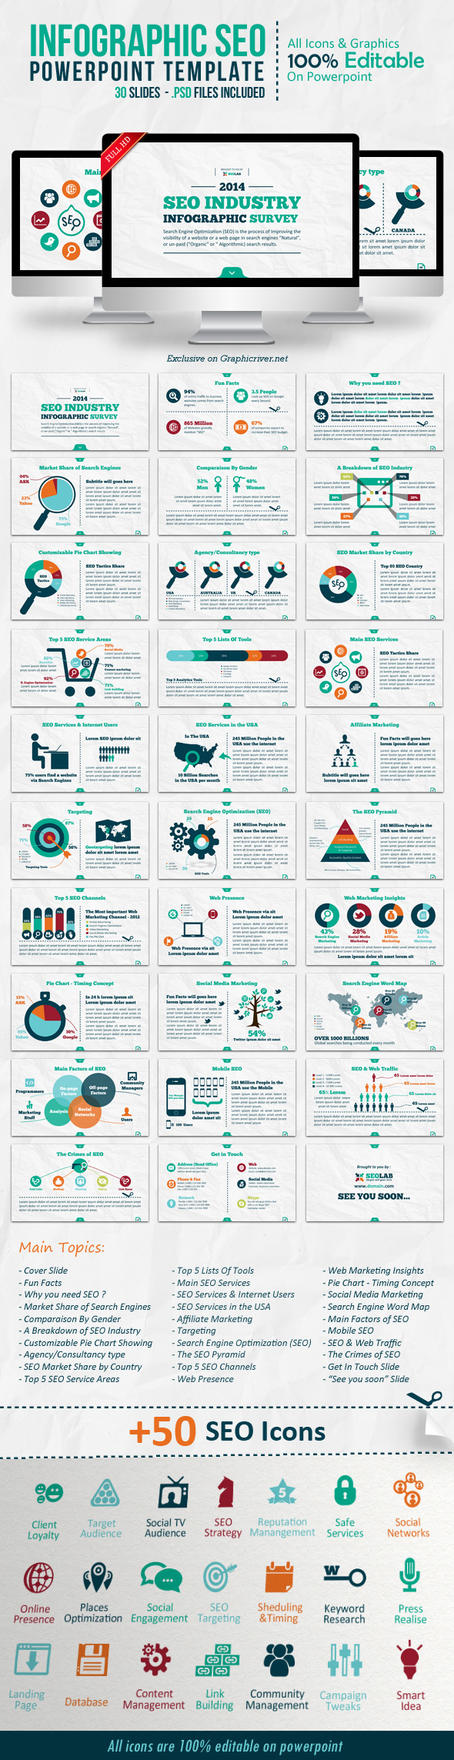 Full templates on powerpointpros deviantart kh2838 4 1 infographic seo powerpoint template by kh2838 alramifo Image collections